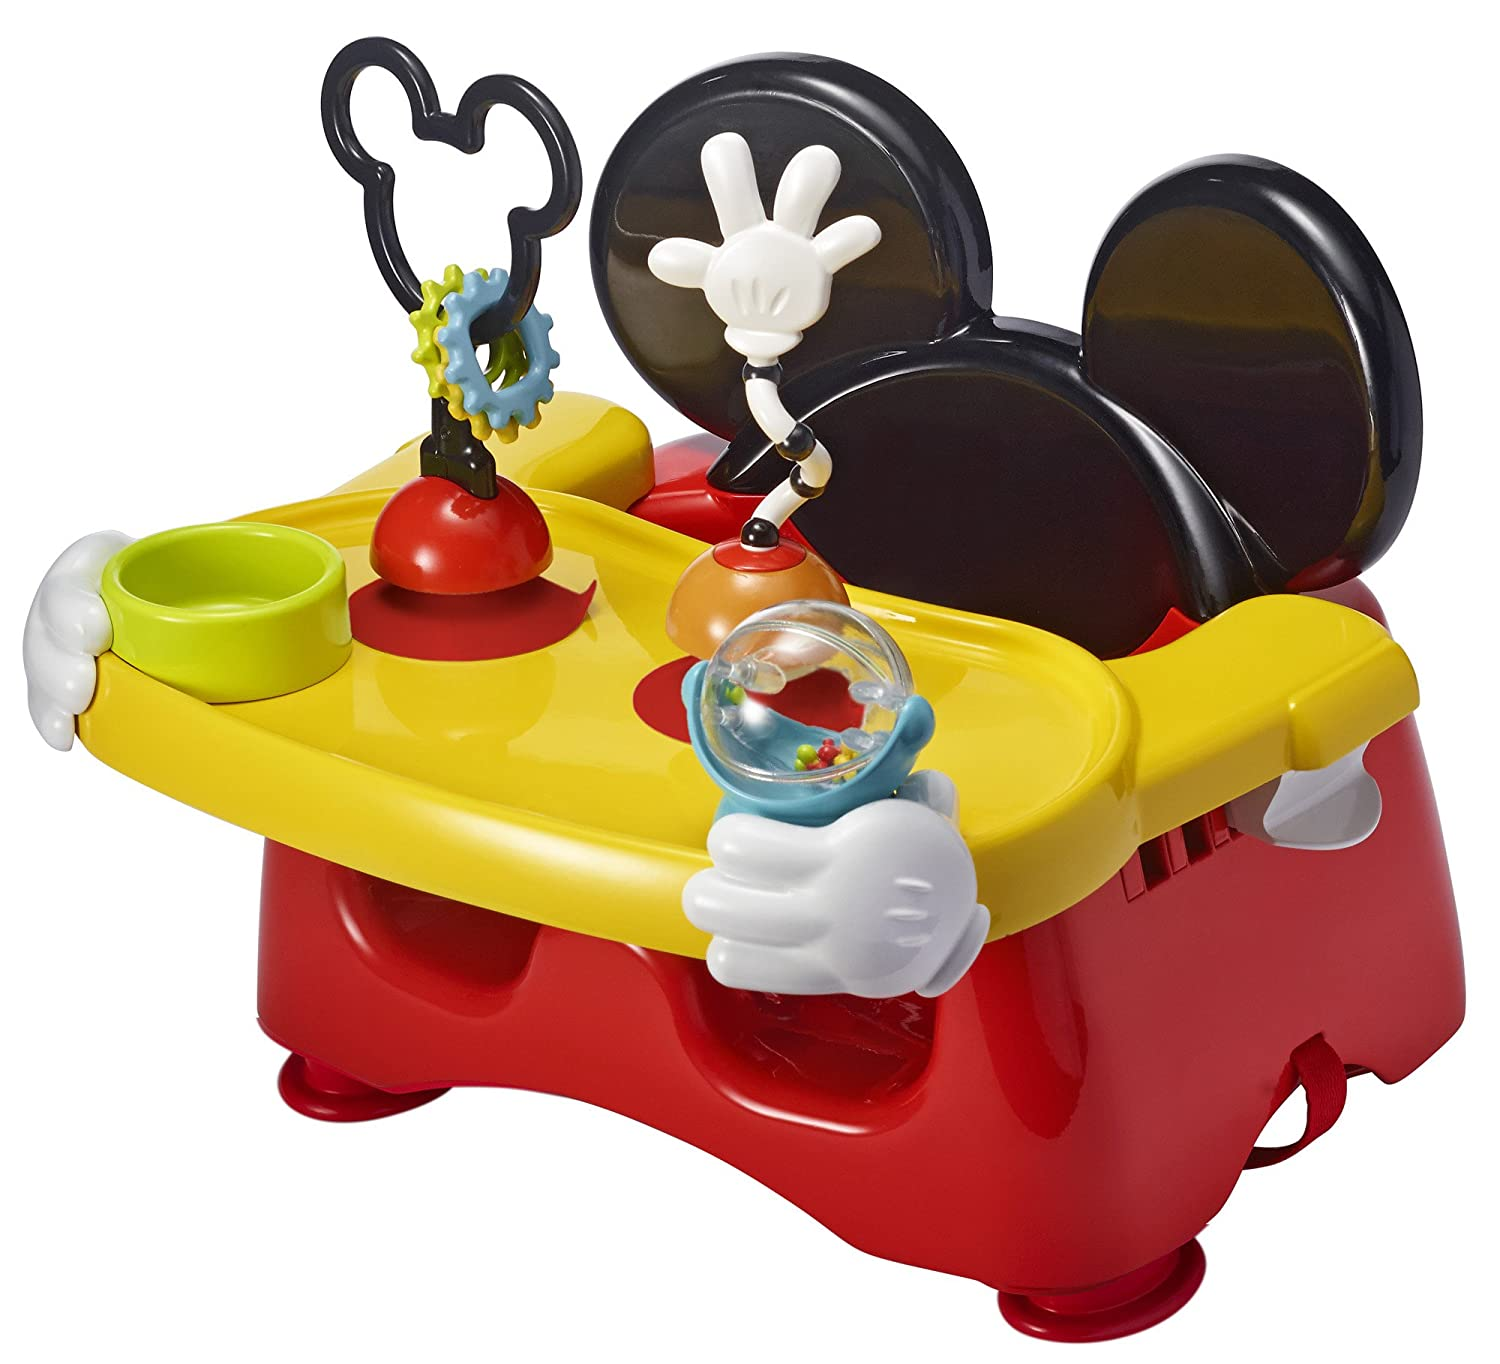 The First Years Disney Baby Helping Hands Feeding and Activity Seat, Mickey Mouse Y10529A1